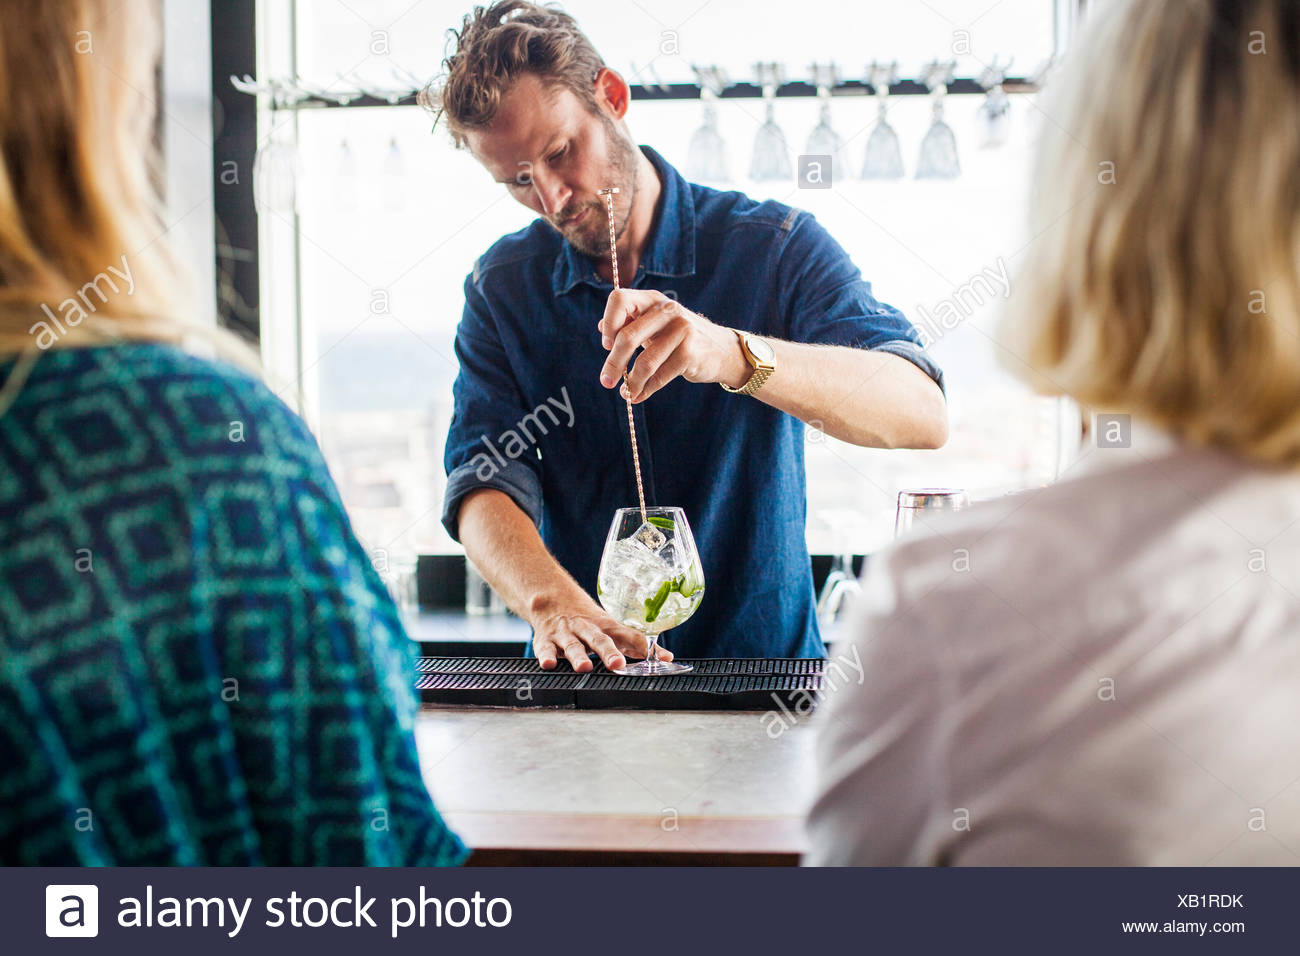 Female customers with bartender making drink at bar counter - Stock Image